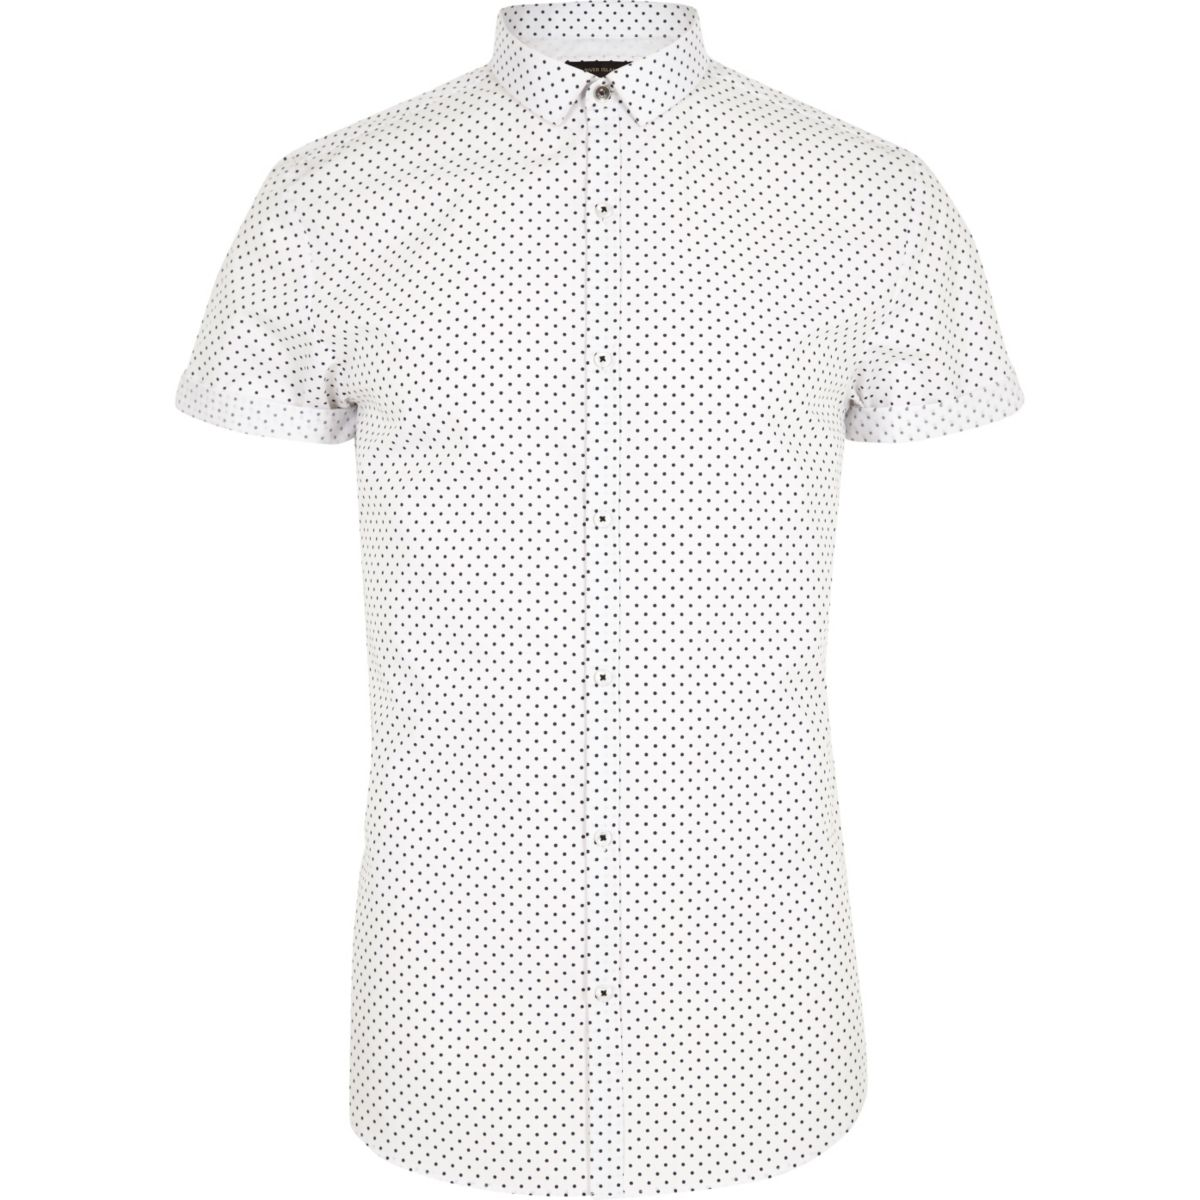 White polka dot short sleeve slim fit shirt